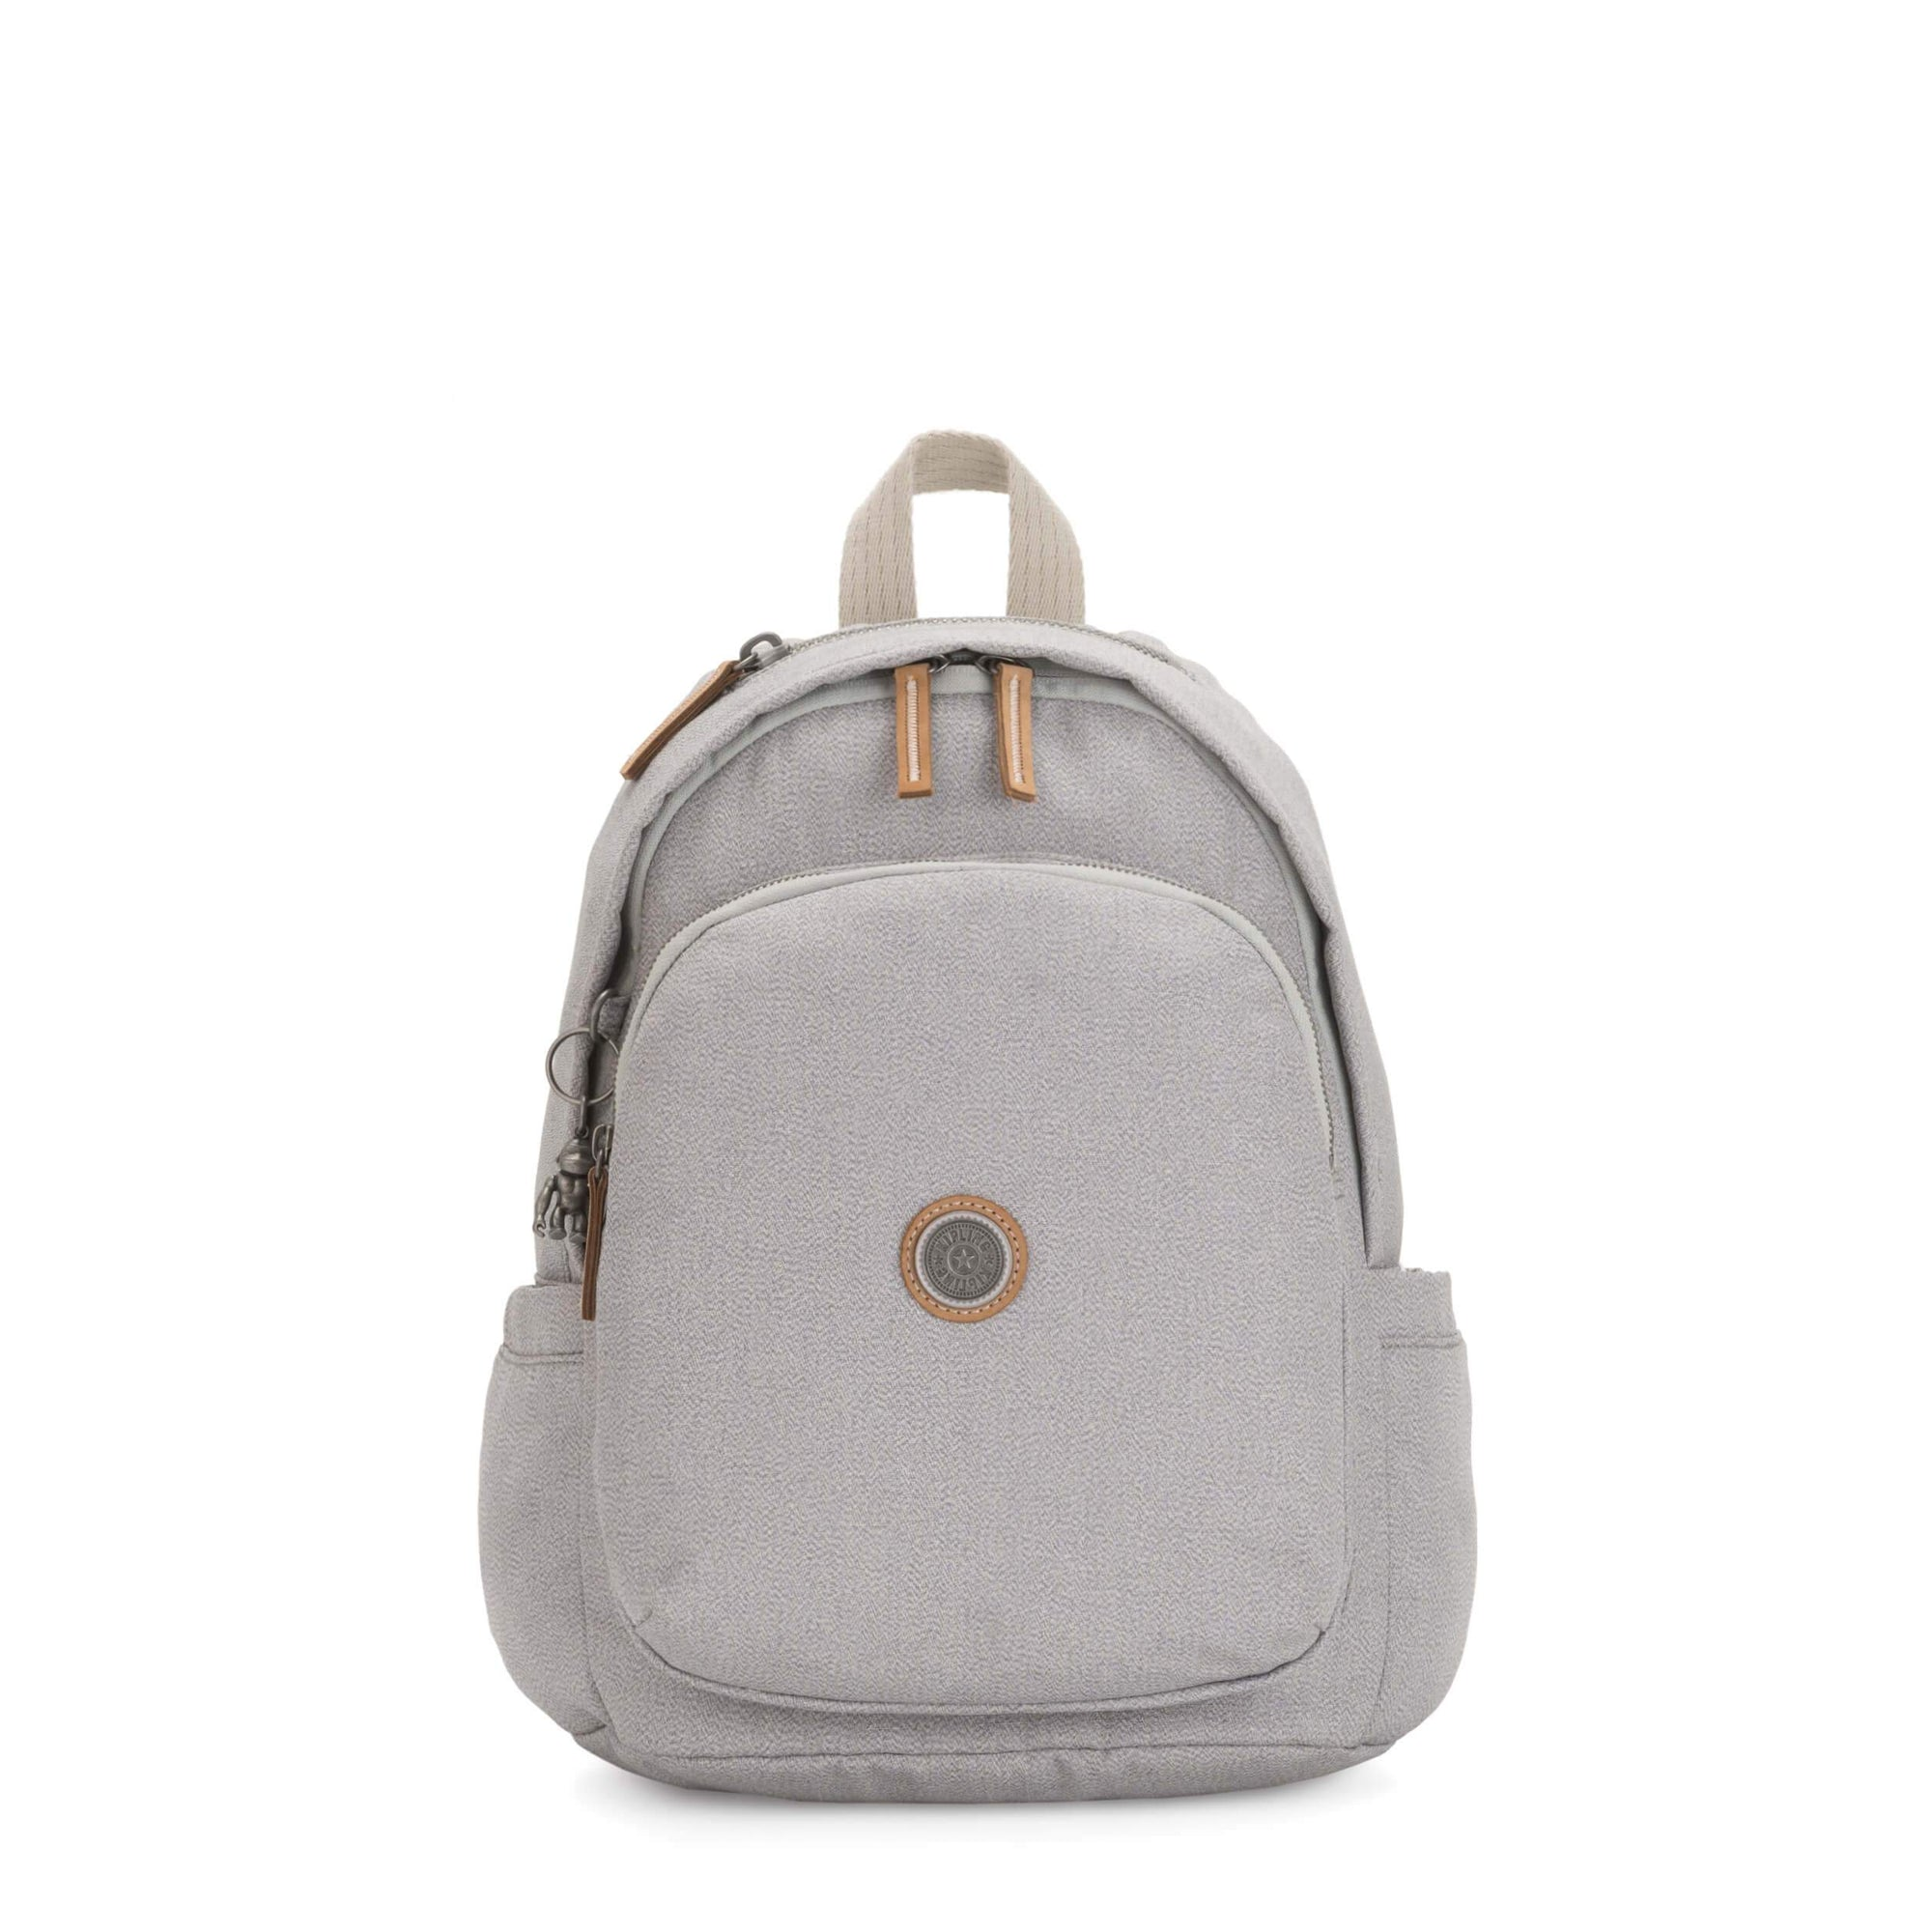 Backpack Kipling Delia Rustic Blue KI524529I